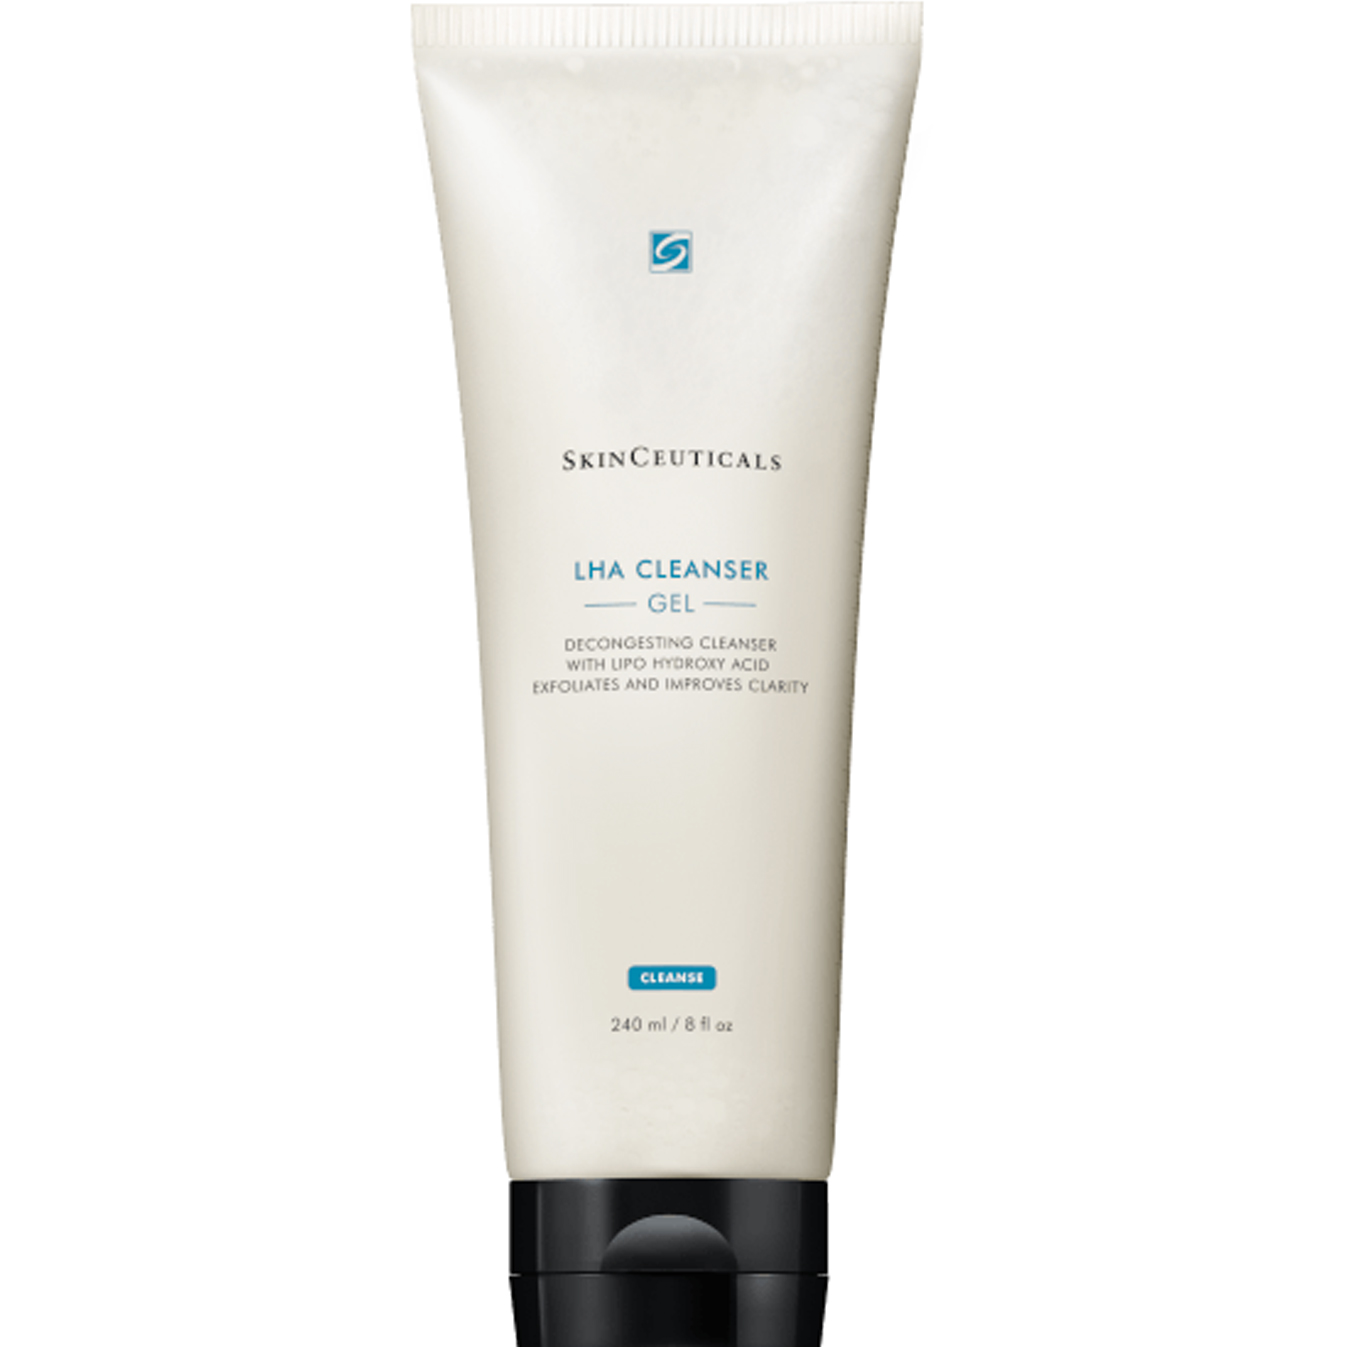 Exfoliating cleanser with lipo-hydroxy acid foams to decongest skin and improve clarity